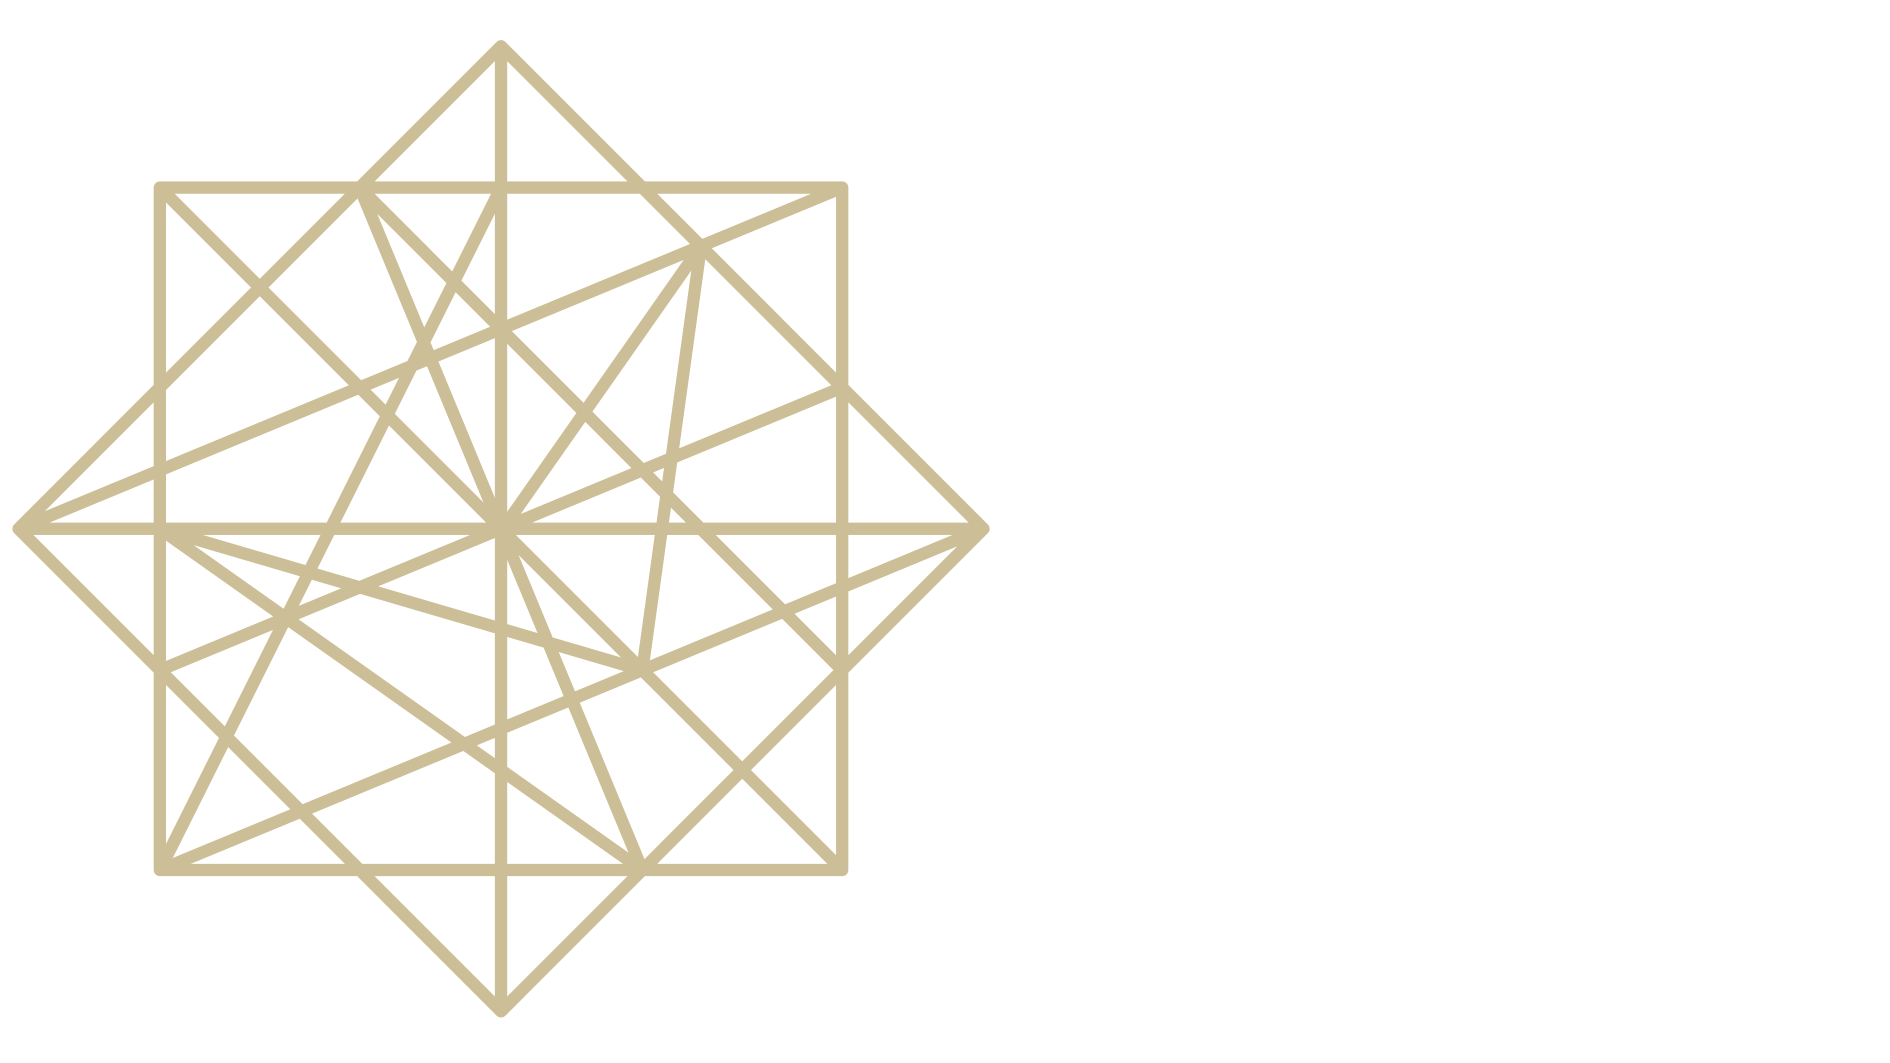 4c-executive-search